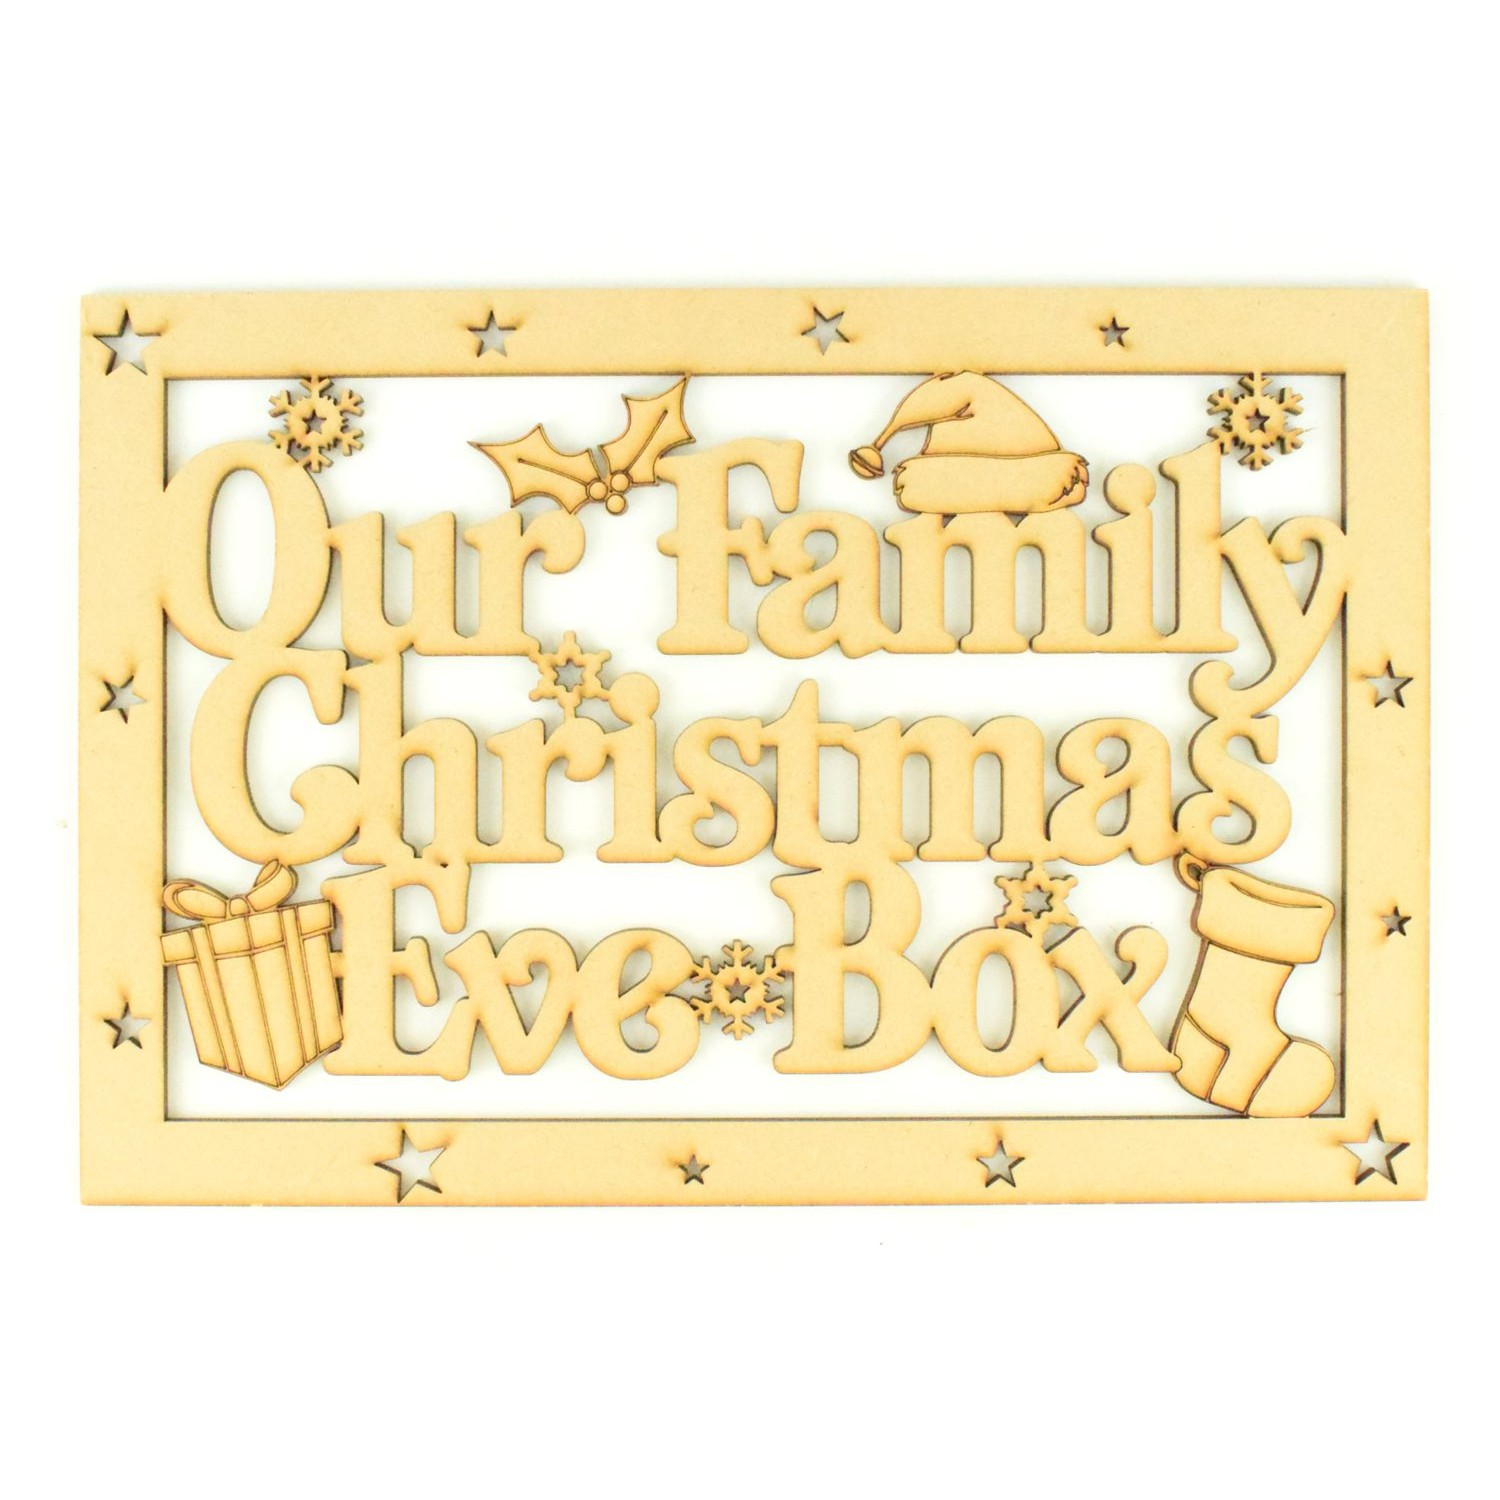 /'Our Family Christmas Eve Box/' Wooden MDF Childrens Christmas Eve Box Gift